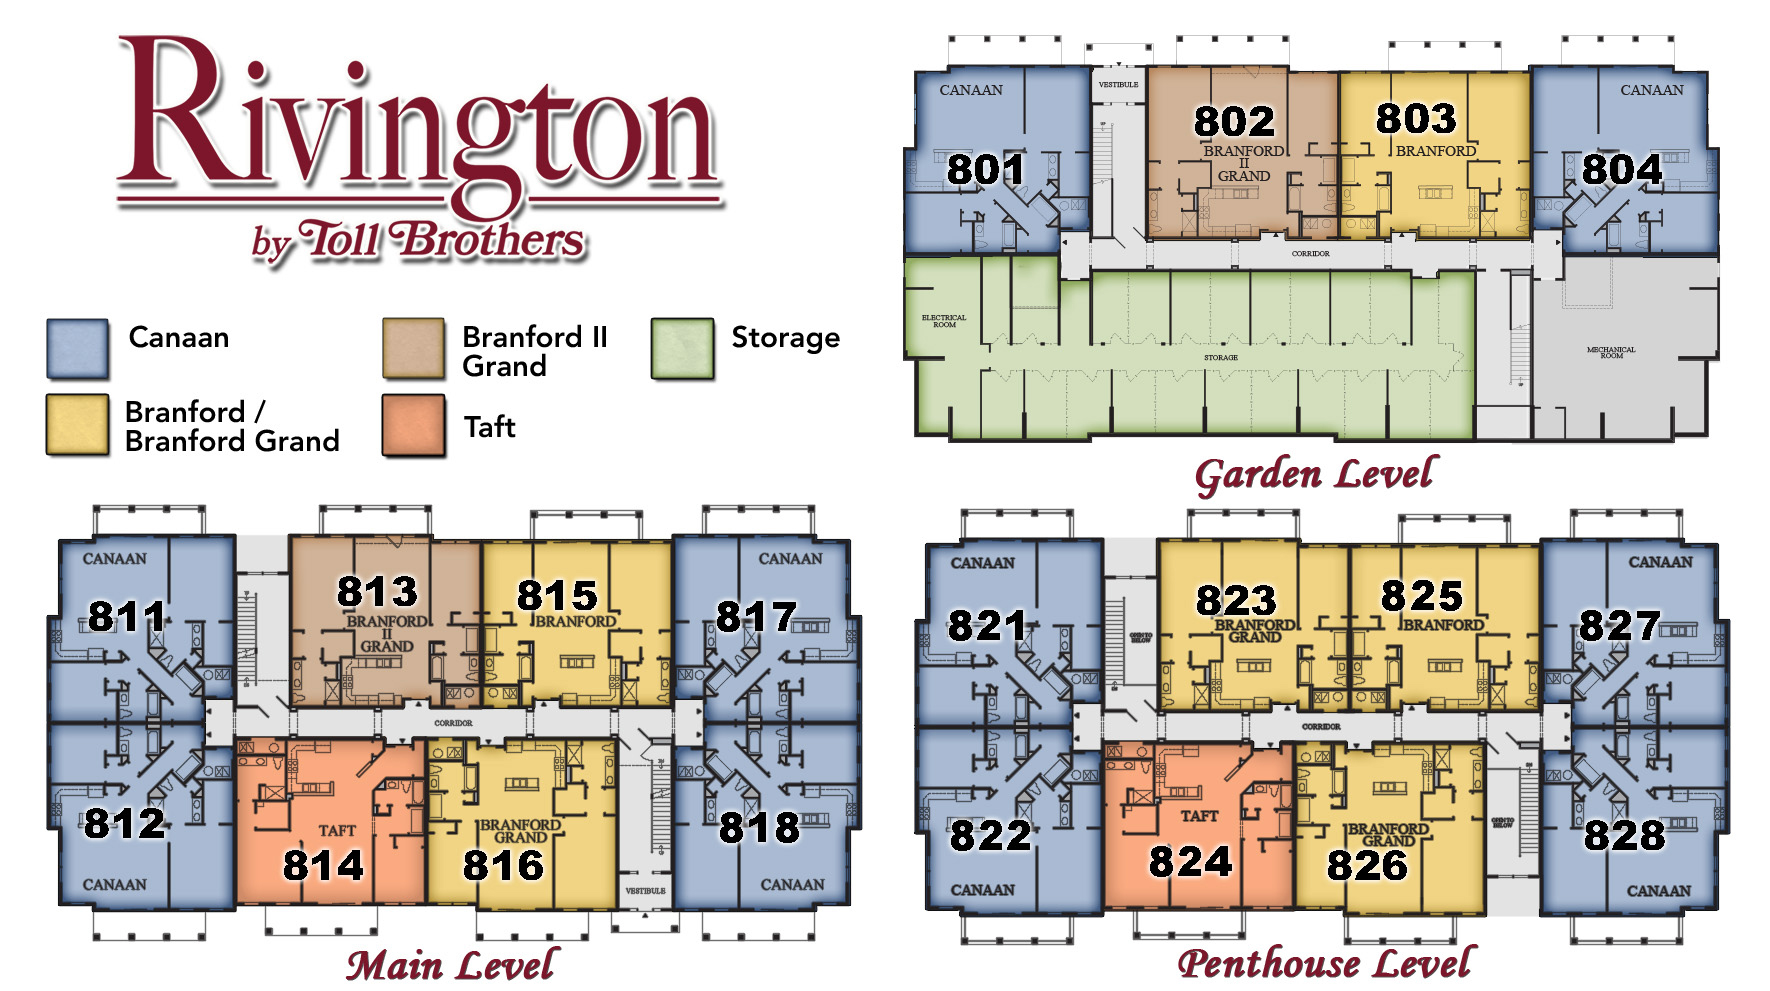 Rivington by Toll Brothers Building 800 Site Plan